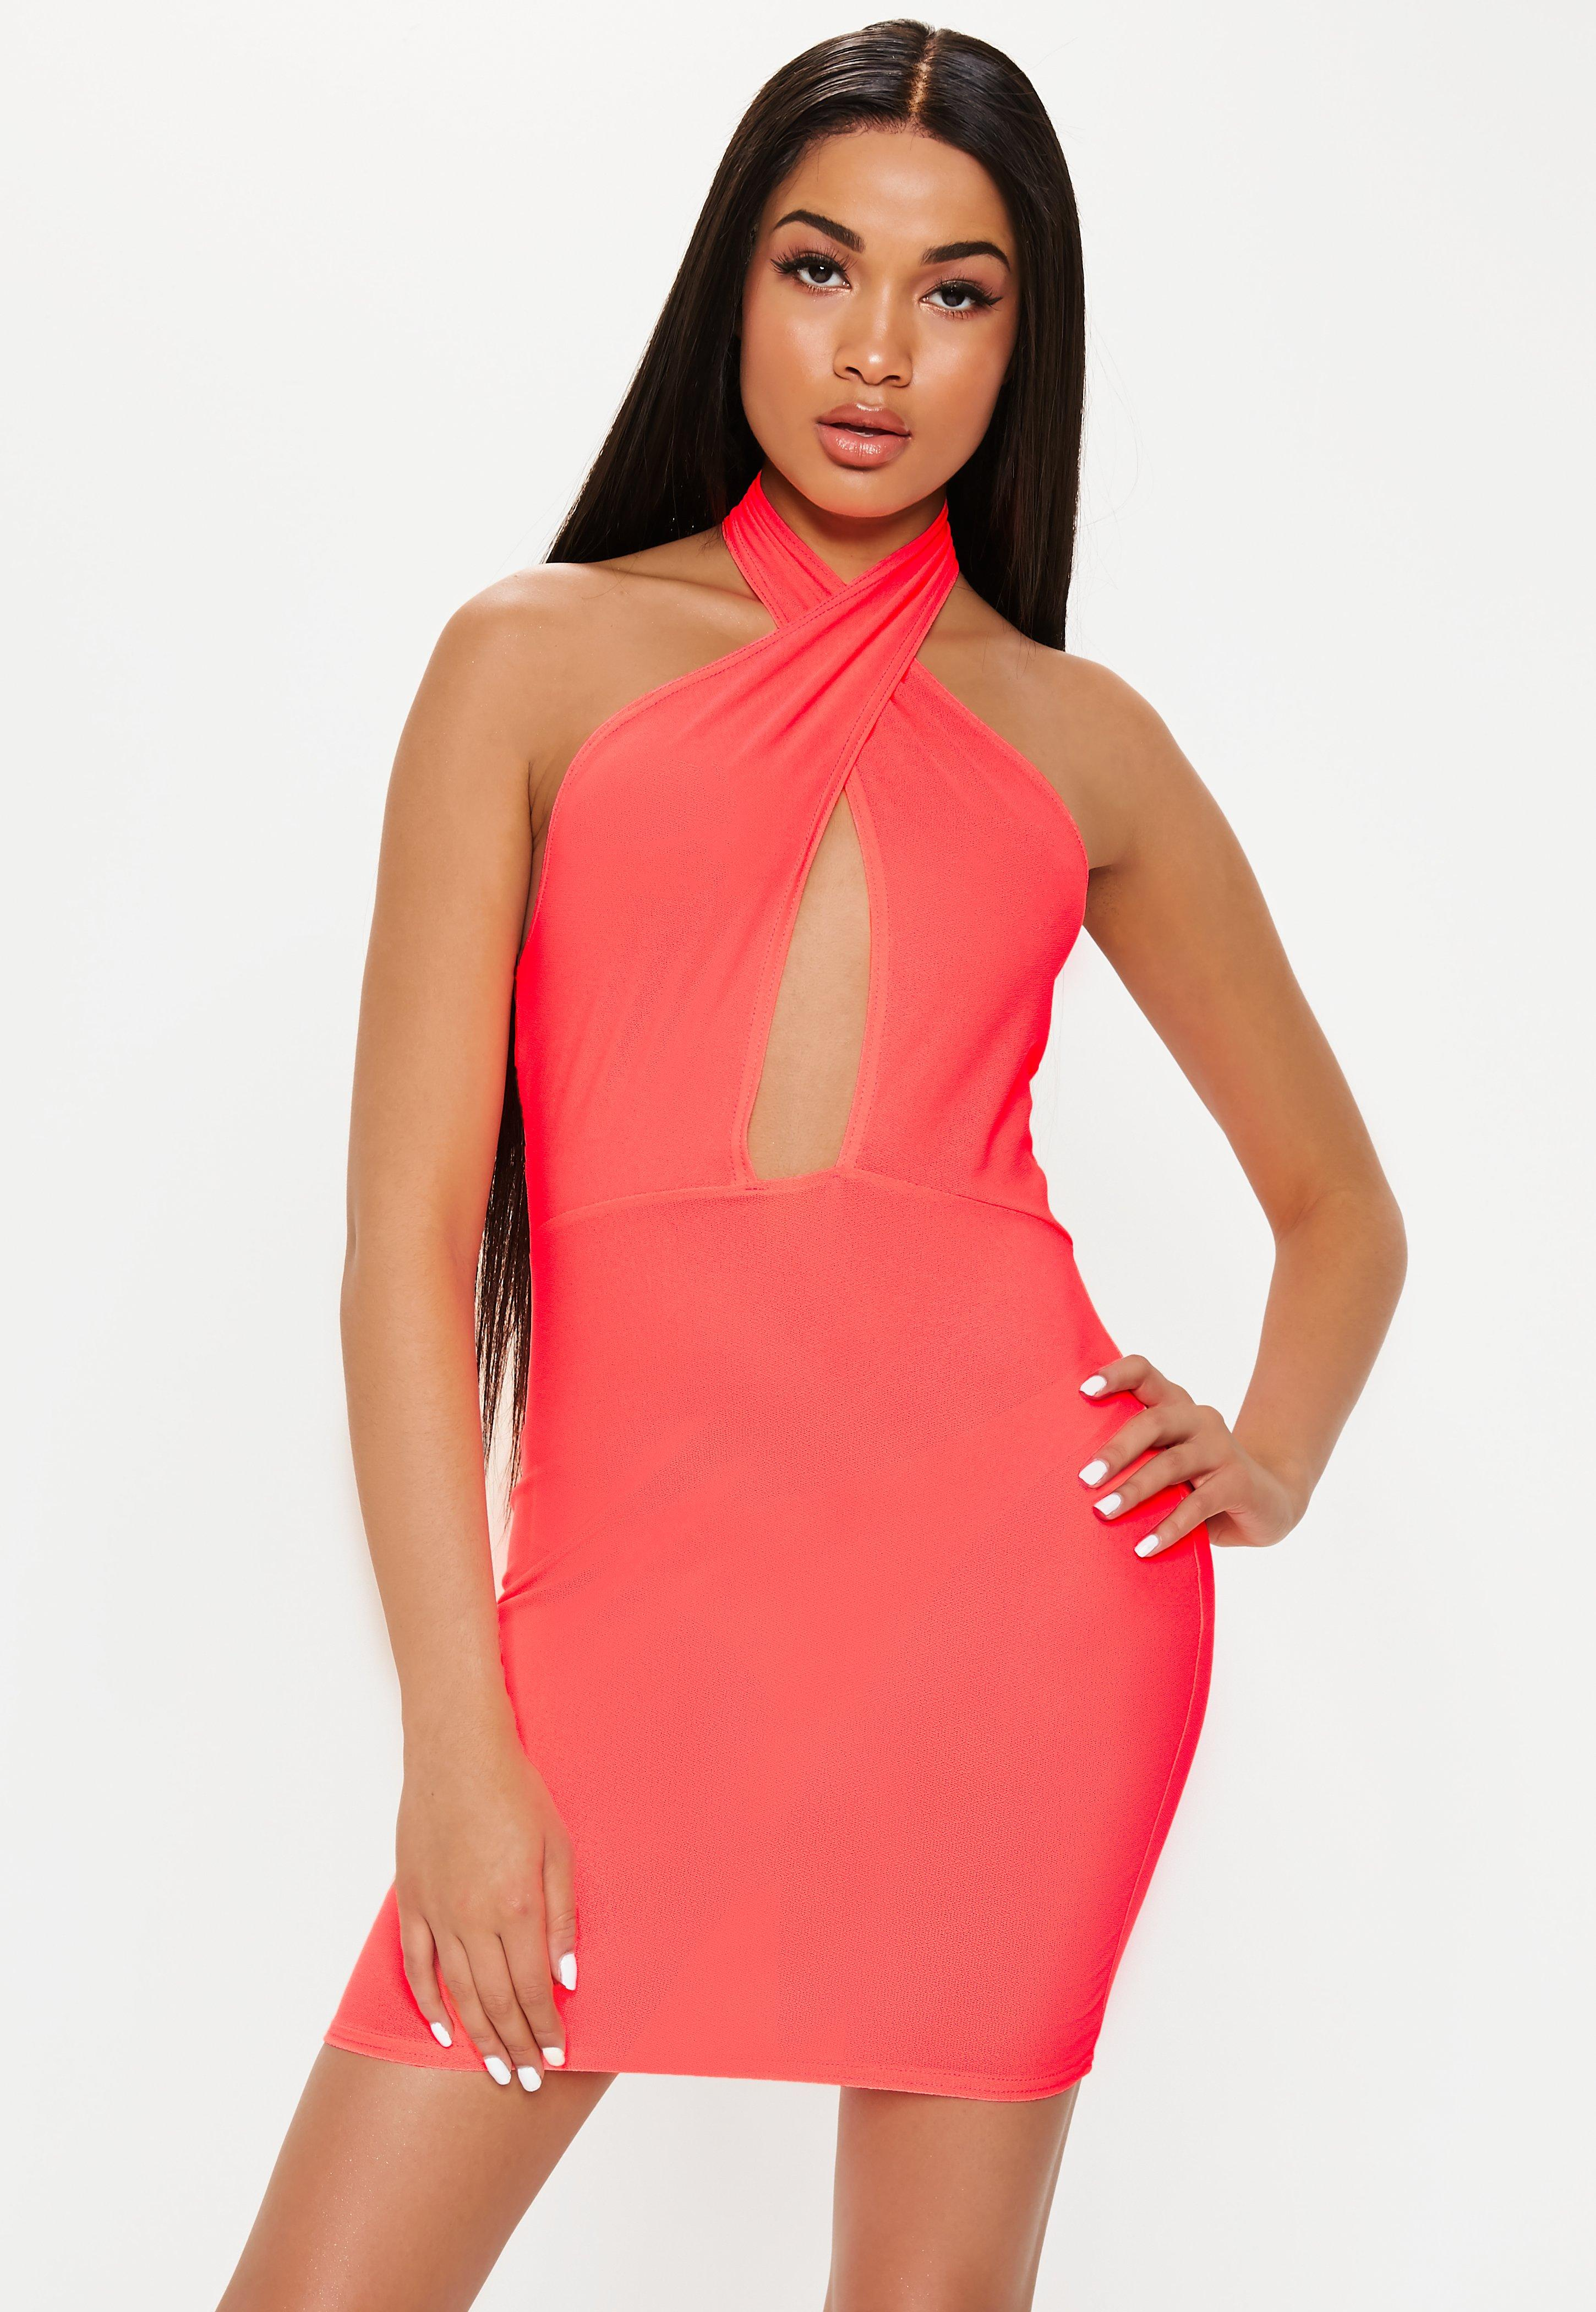 ea1be229a1 Clothes Sale - Women s Cheap Clothes UK - Missguided